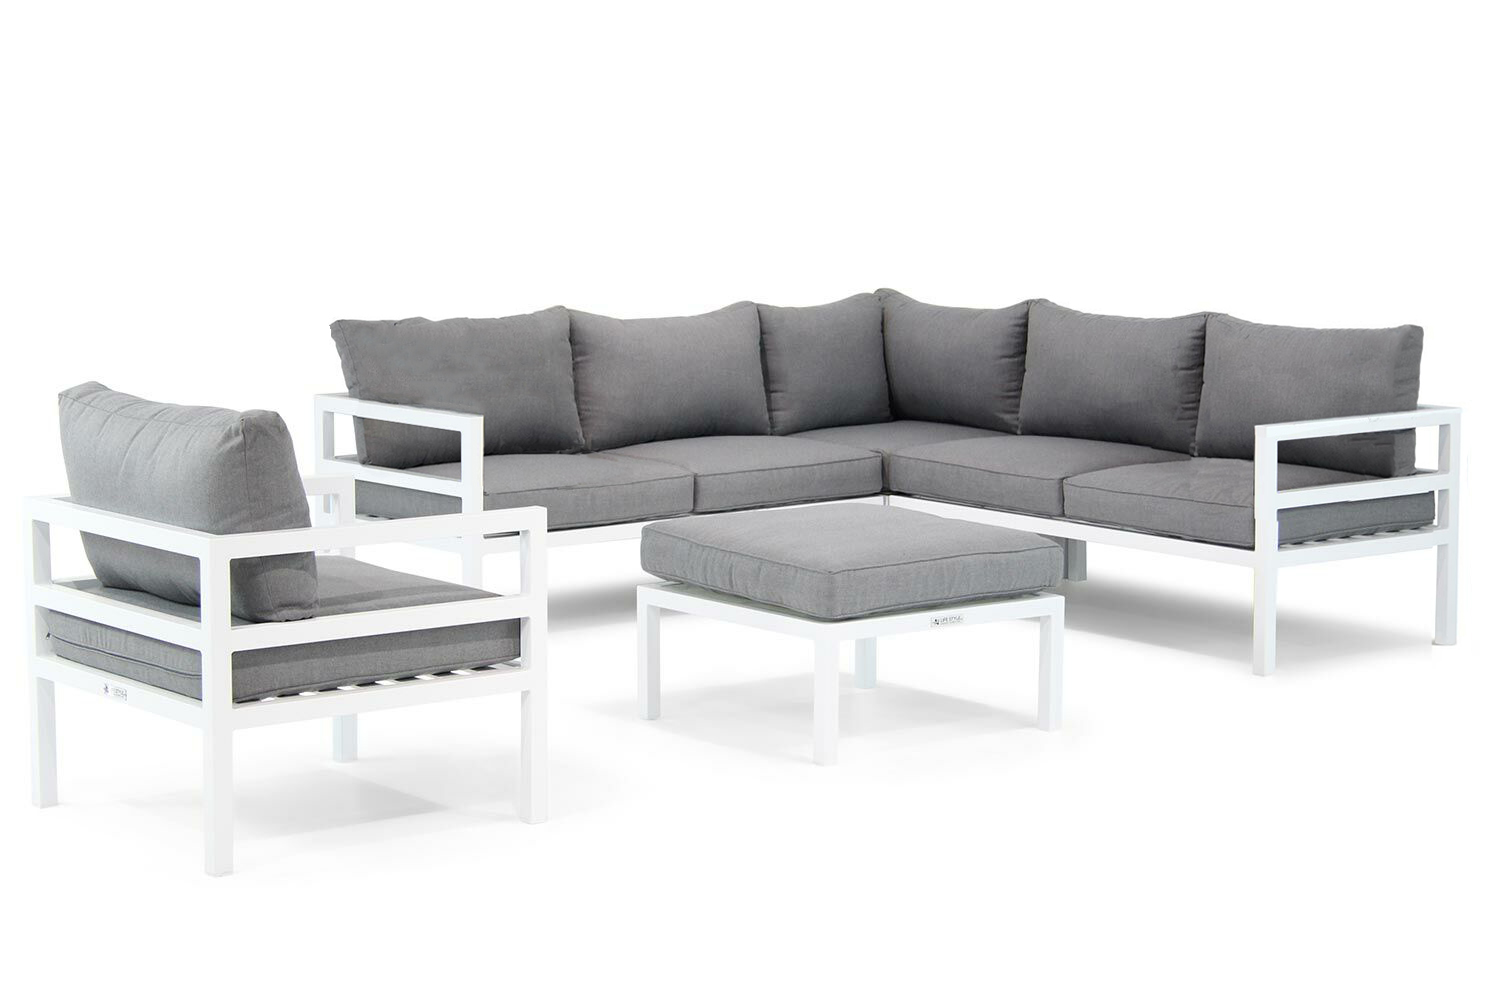 Lifestyle Arenas hoek loungesets 5-delig